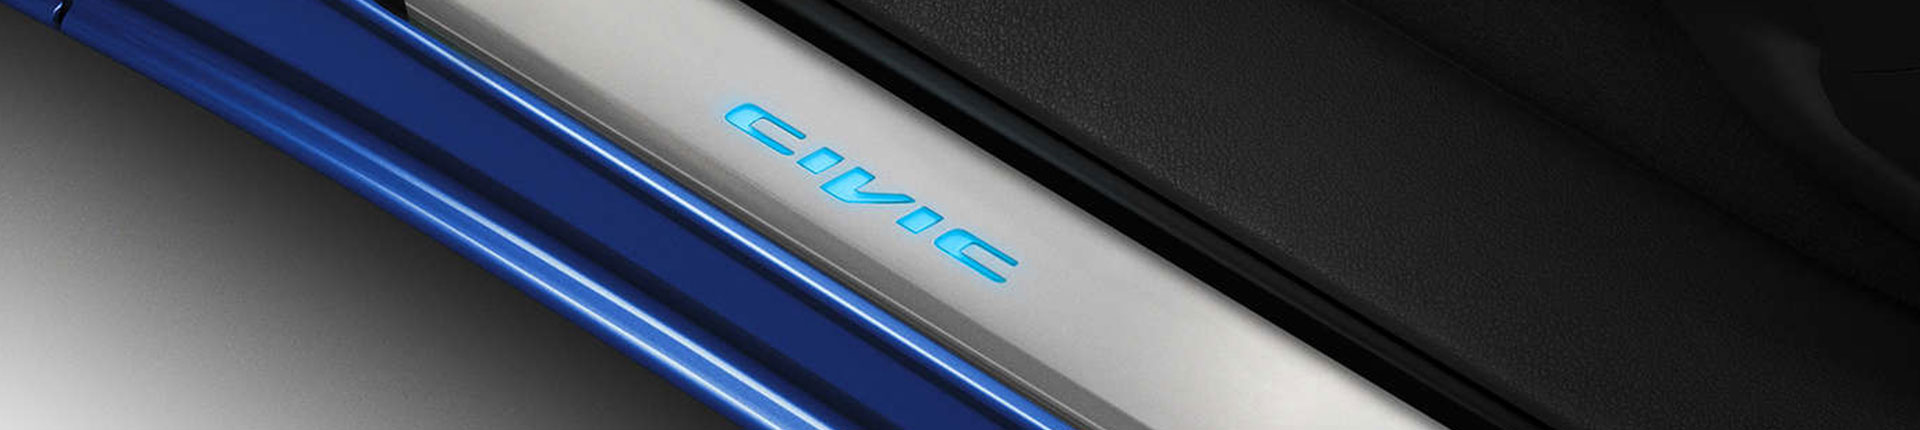 civic-slider8